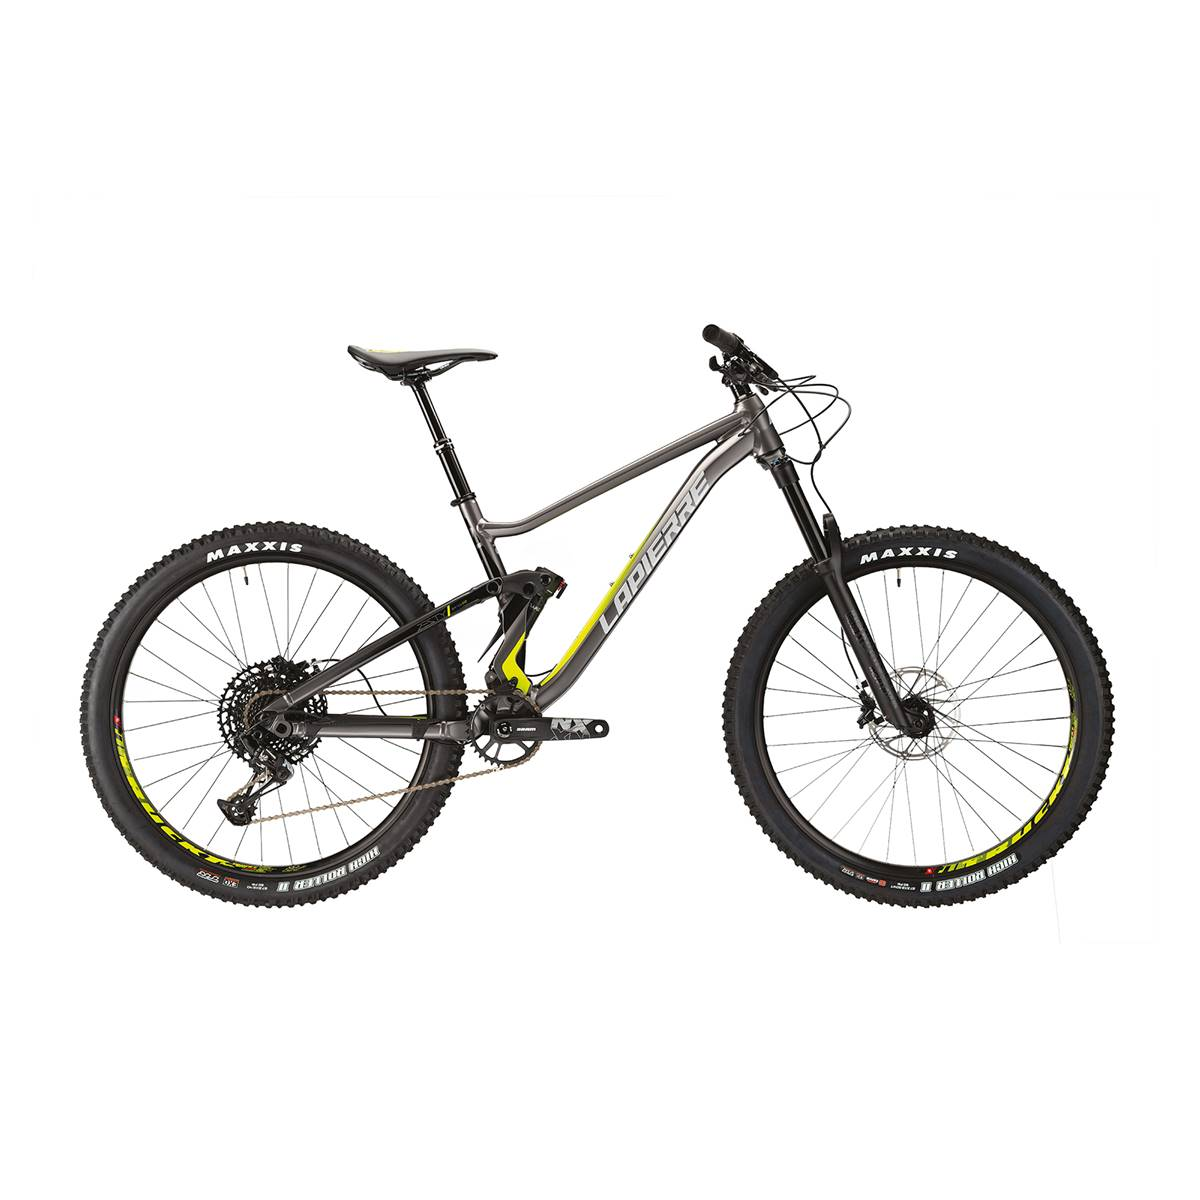 vtt tout suspendu lapierre zesty am fit 4 0 27 5 2020 pas cher intercycle